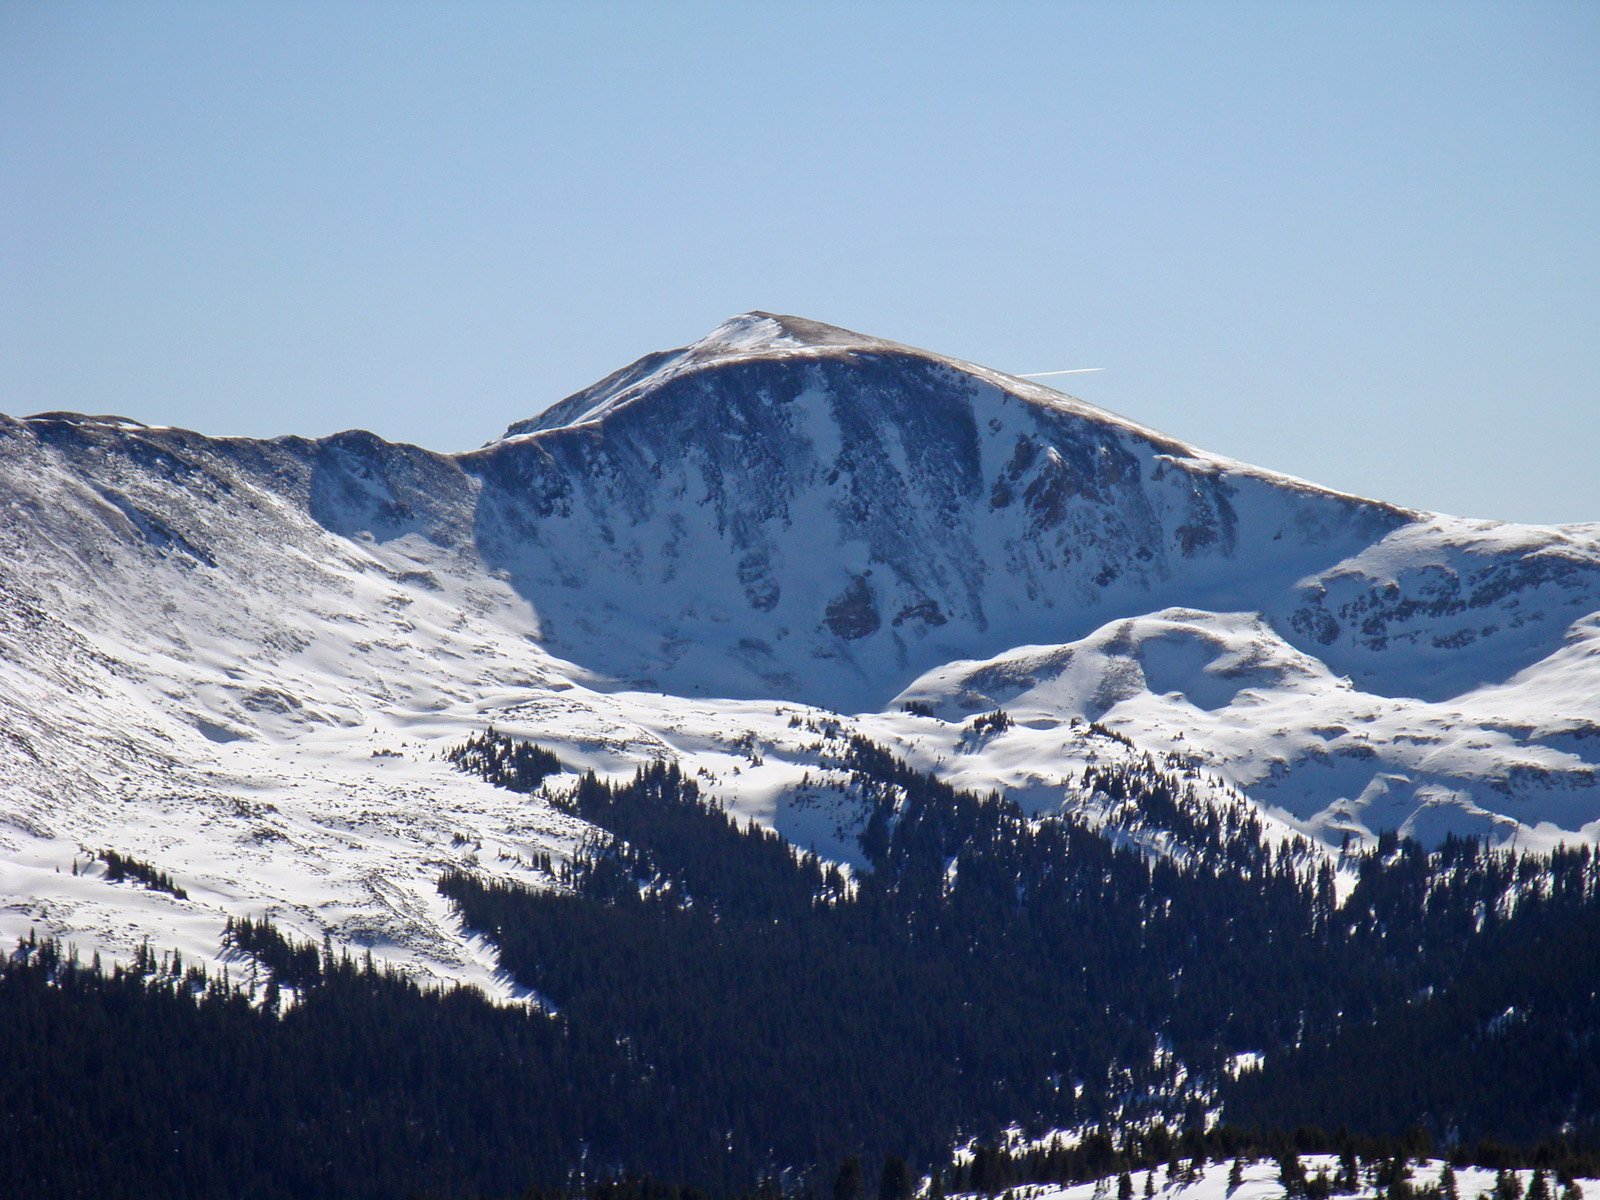 Jones Mountain seen from Cottonwood Pass.